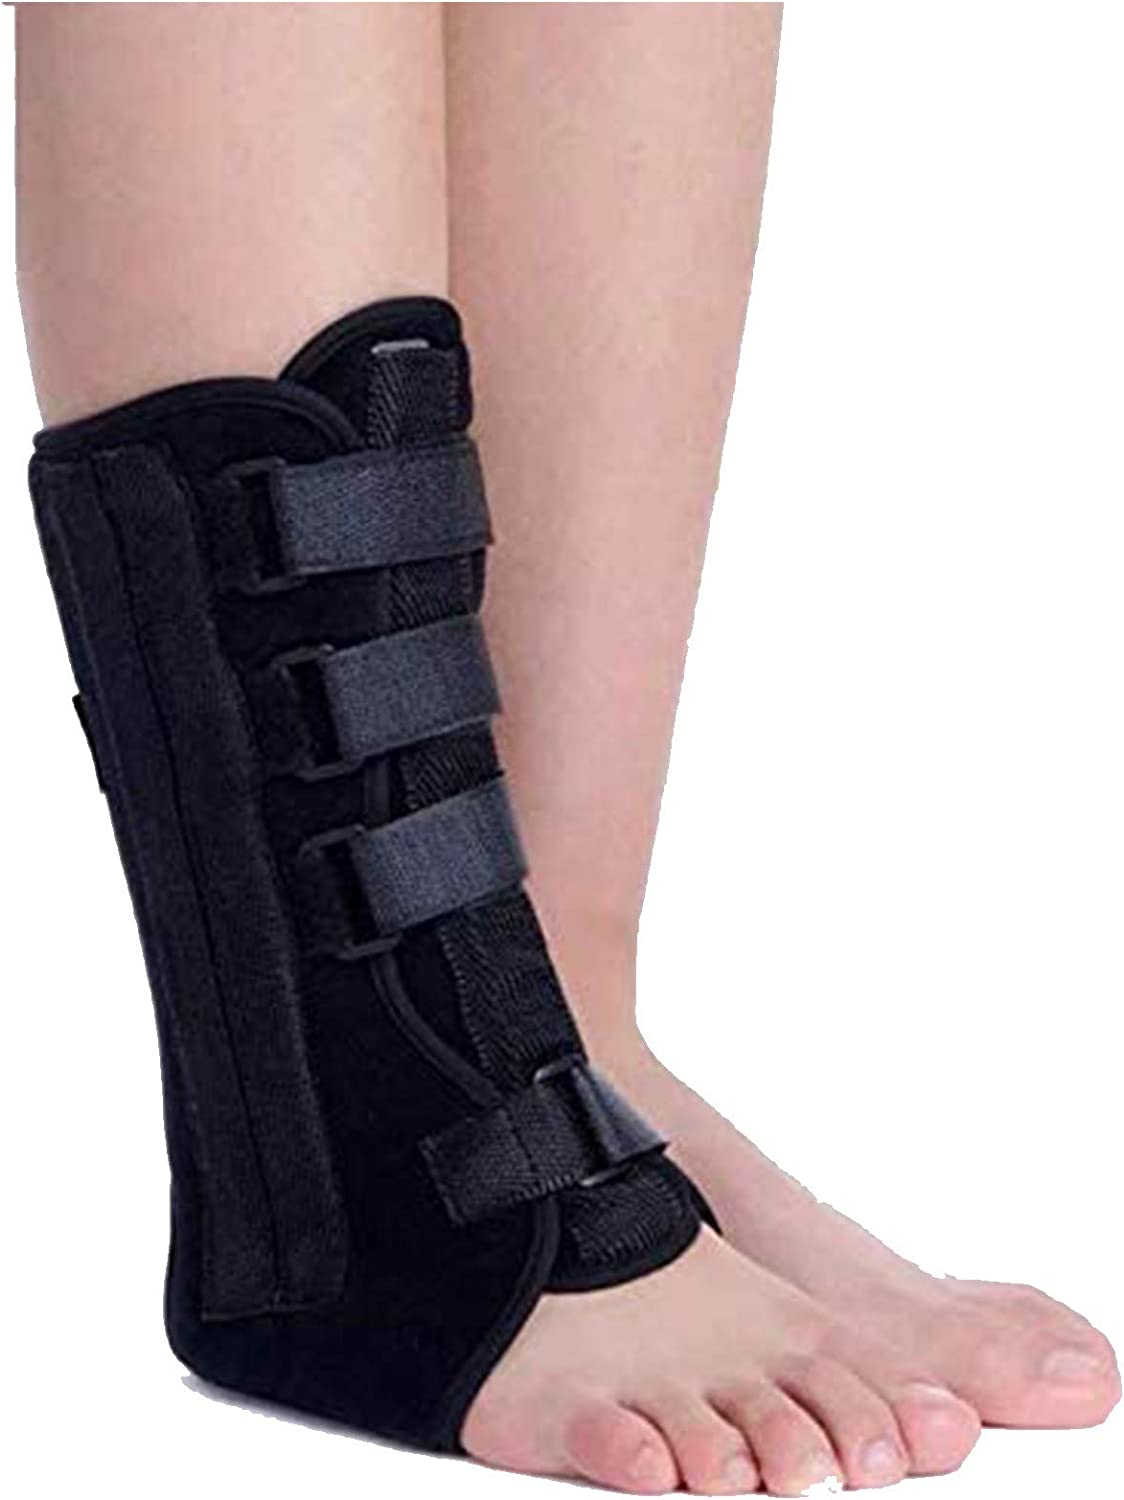 ZYQDRZ Ankle Bombing new work Super popular specialty store Orthosis 1 Sports Support Adjustable